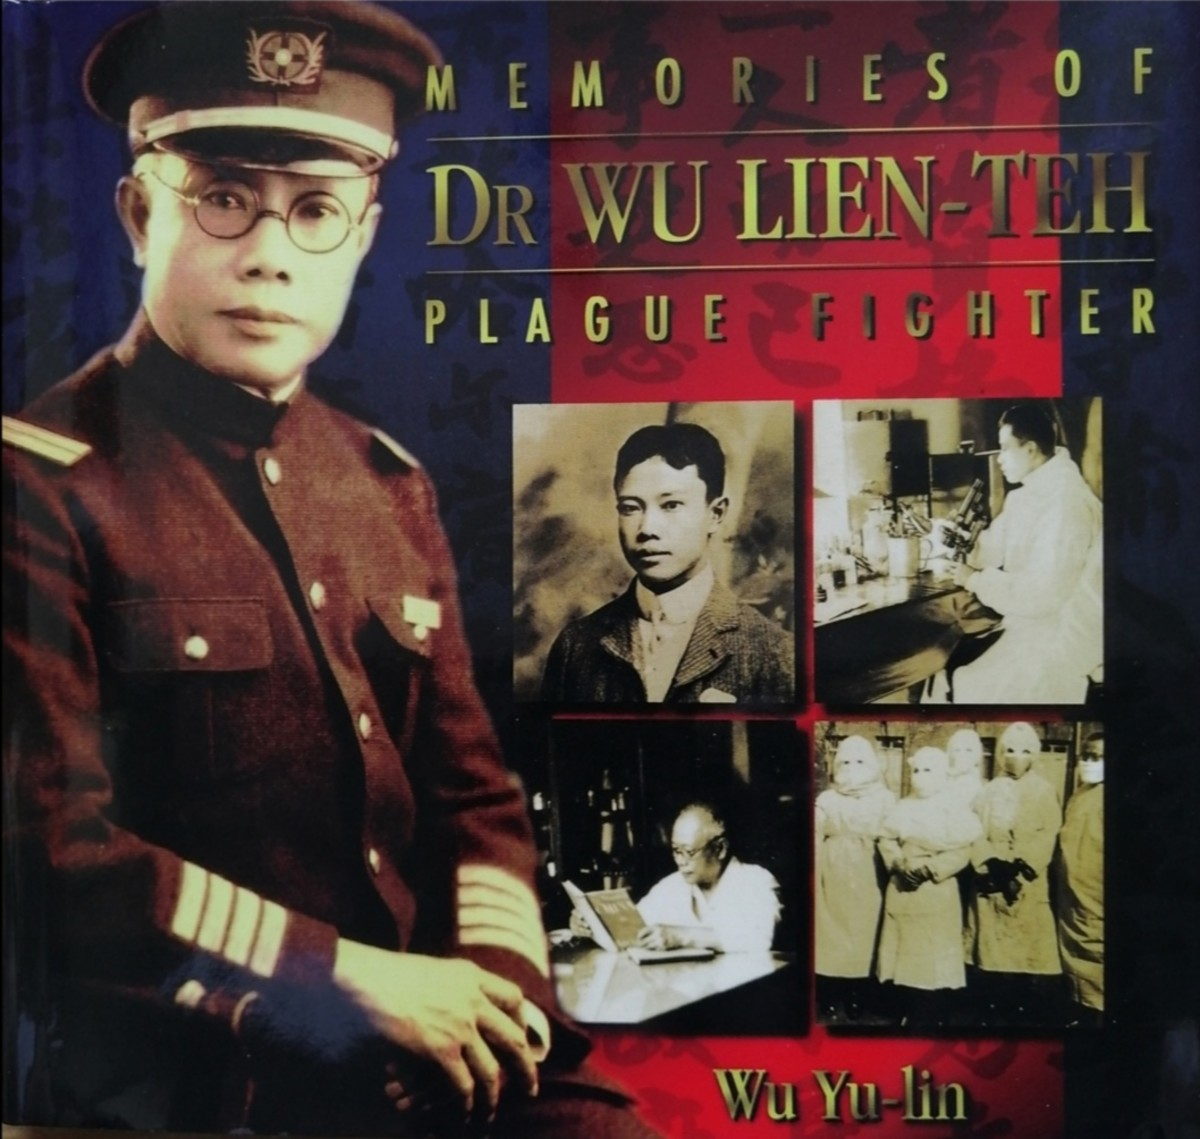 The Pioneer Plague Fighter, Dr Wu Lien-Teh